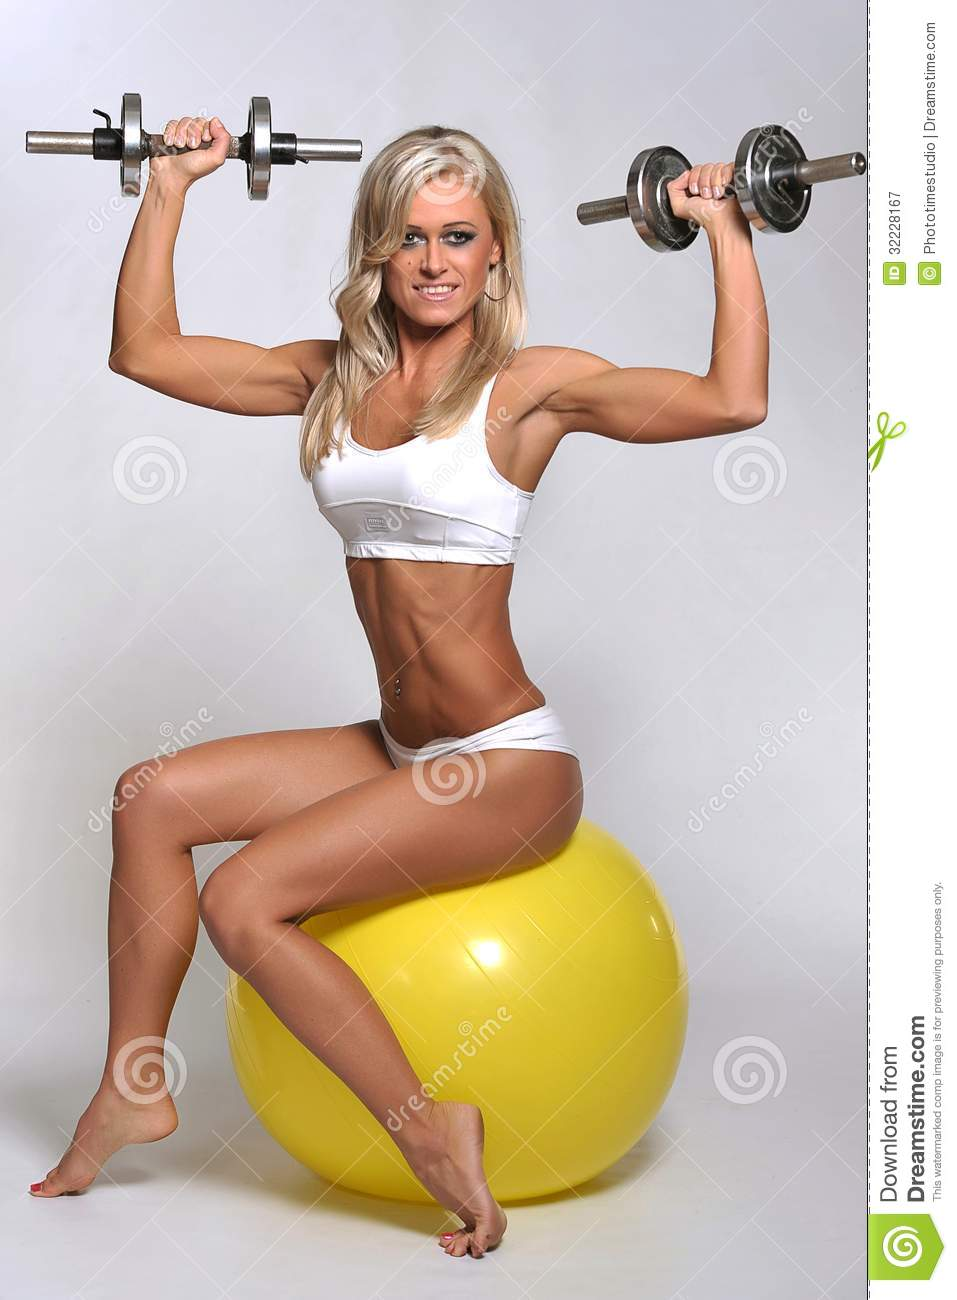 Vso 选择路口 likewise Royalty Free Stock Photography Fitness Workout Fit Blonde Woman Training Ball Dumbbells Image32228167 besides PCP Process Control Plan Template furthermore About Us furthermore Time Reflection. on lean to plans